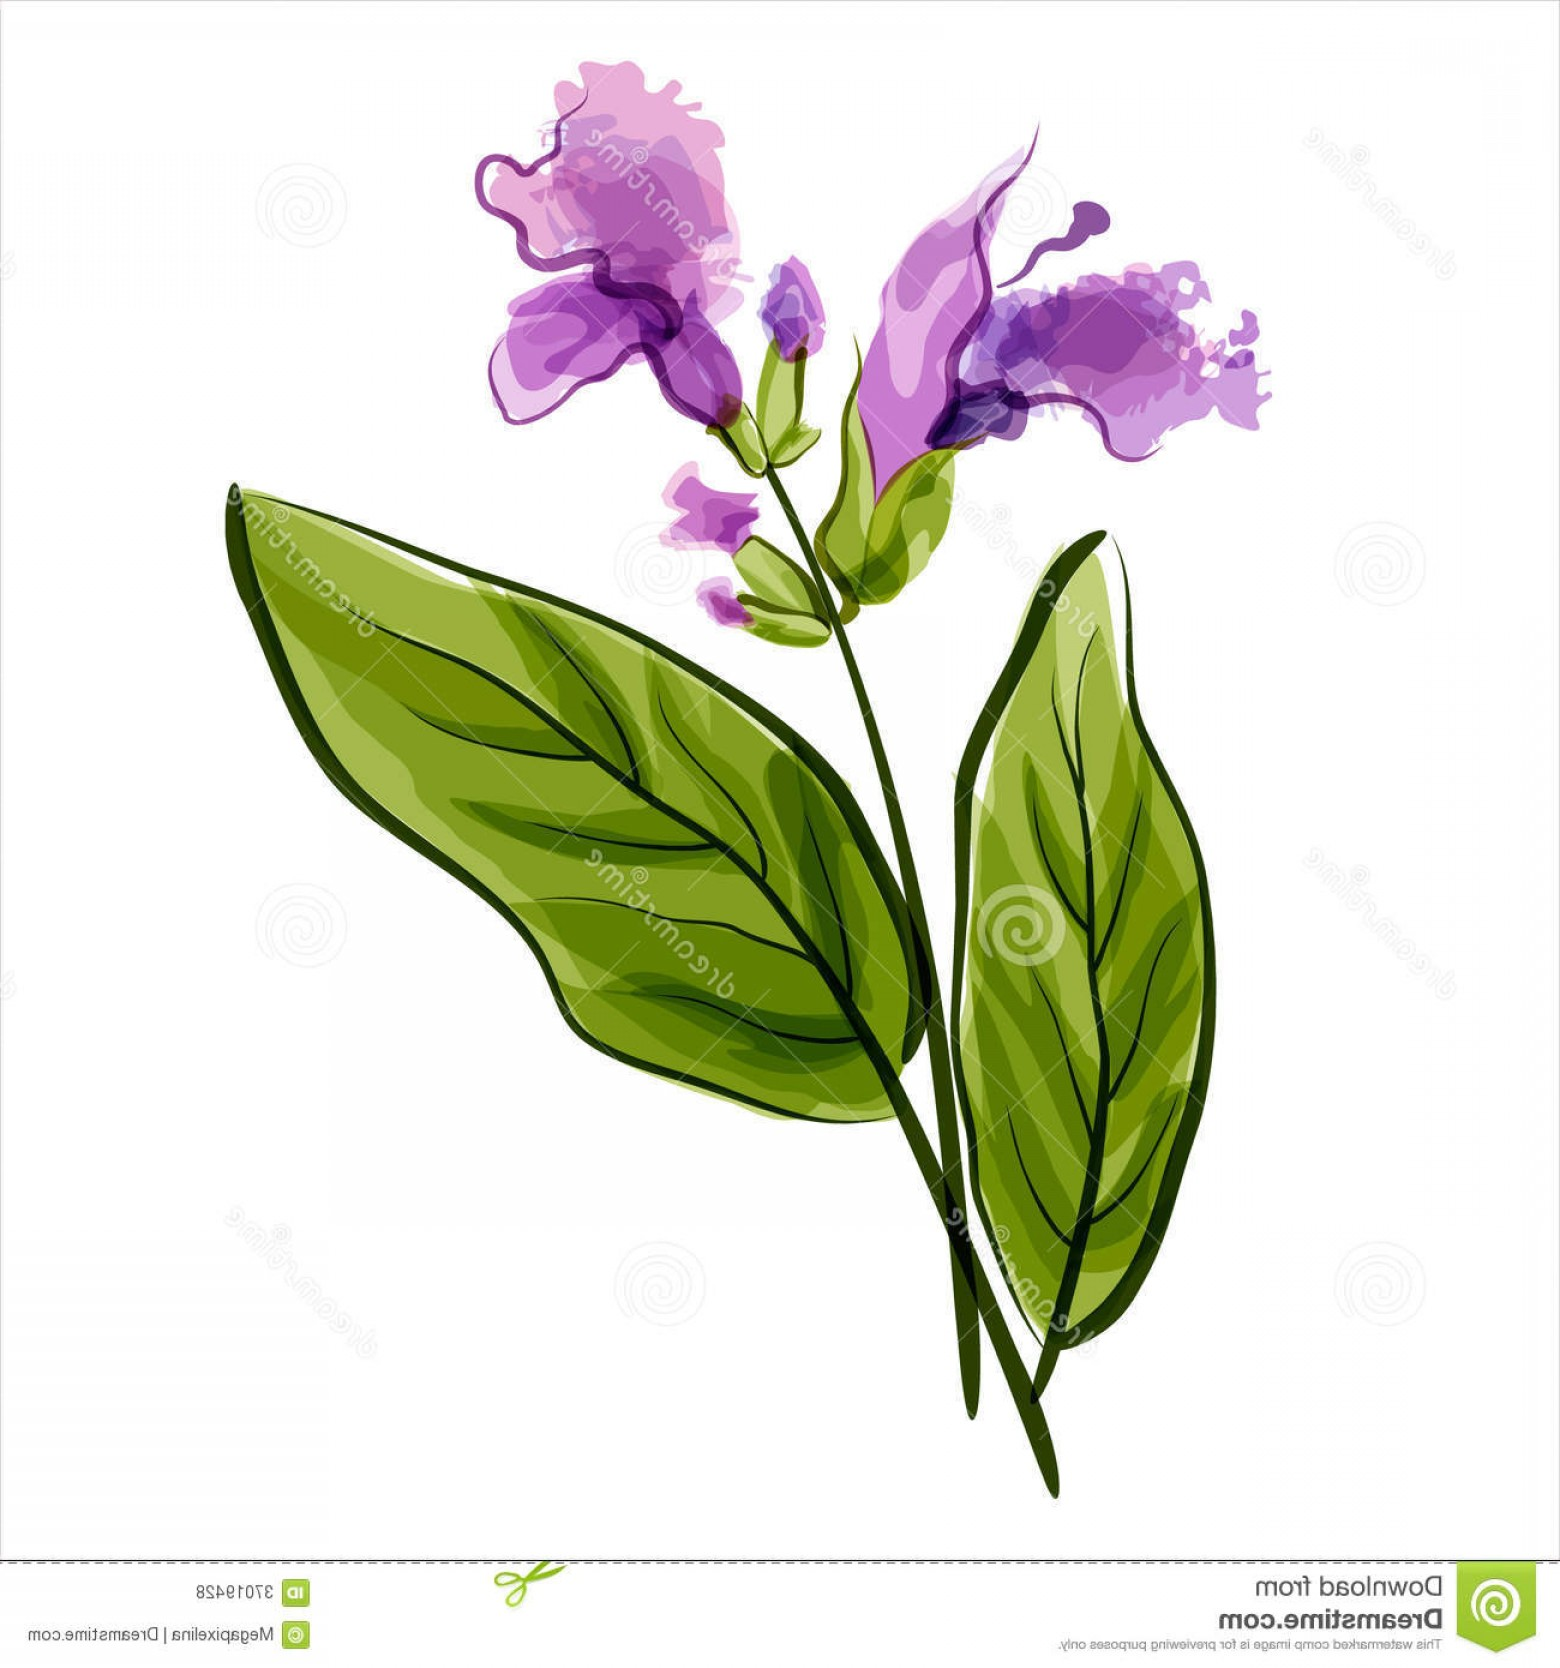 Sage Plant Vector: Royalty Free Stock Photos Salvia Sage Vector Illustration Meadow Flower Image